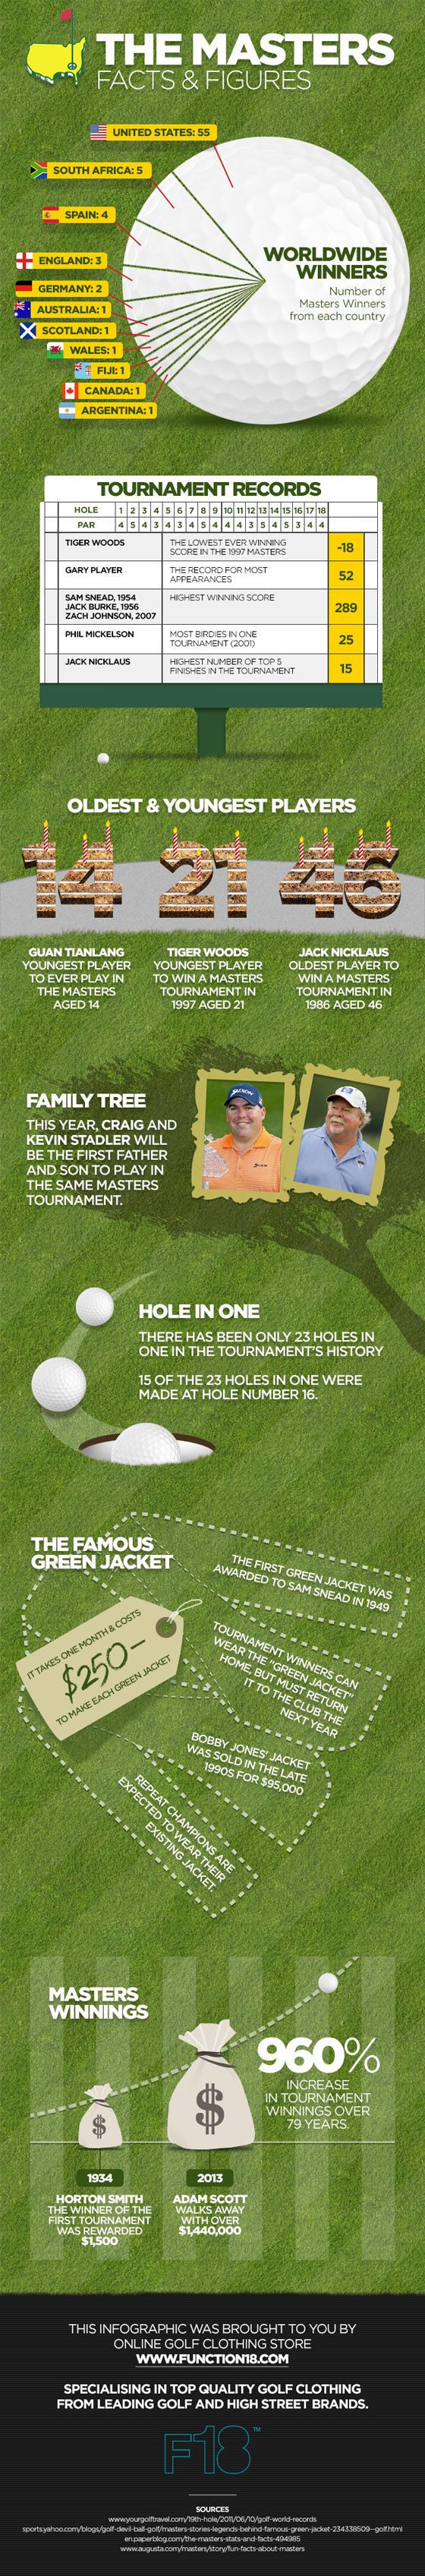 Infographic to get you excited about the 2014 Masters golf tournament